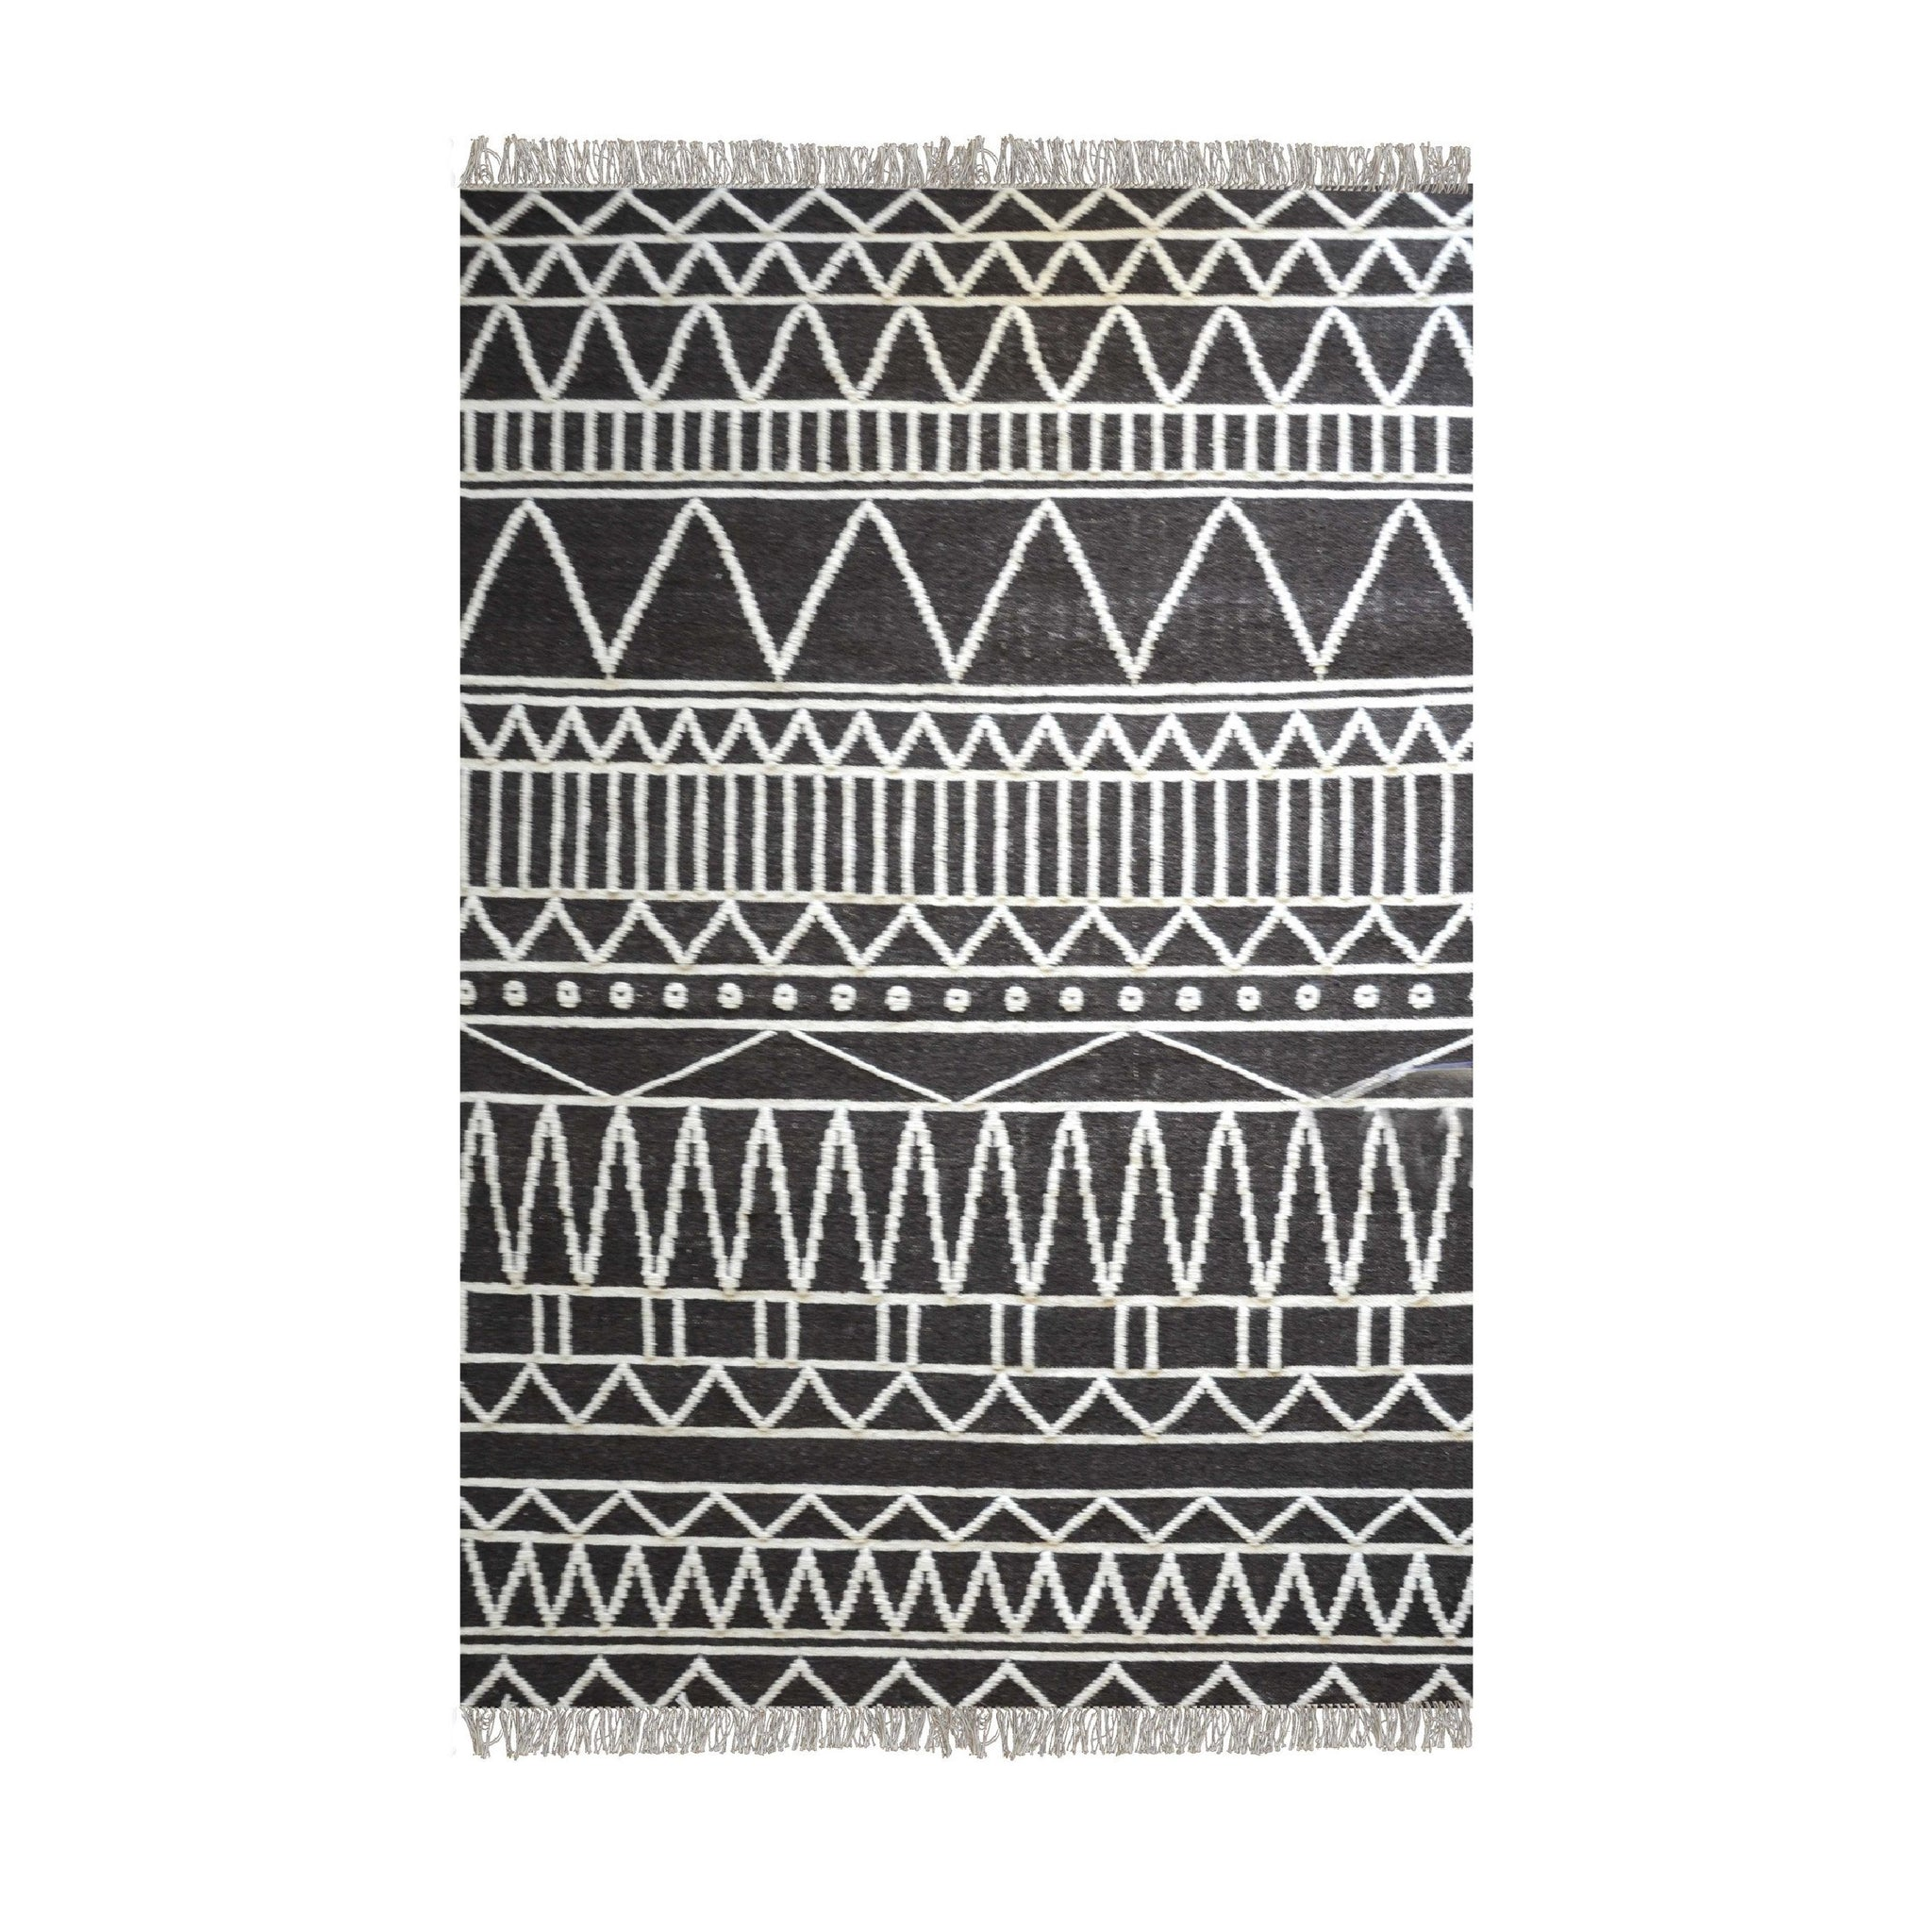 [RUG] Canton Charcoal Ivory